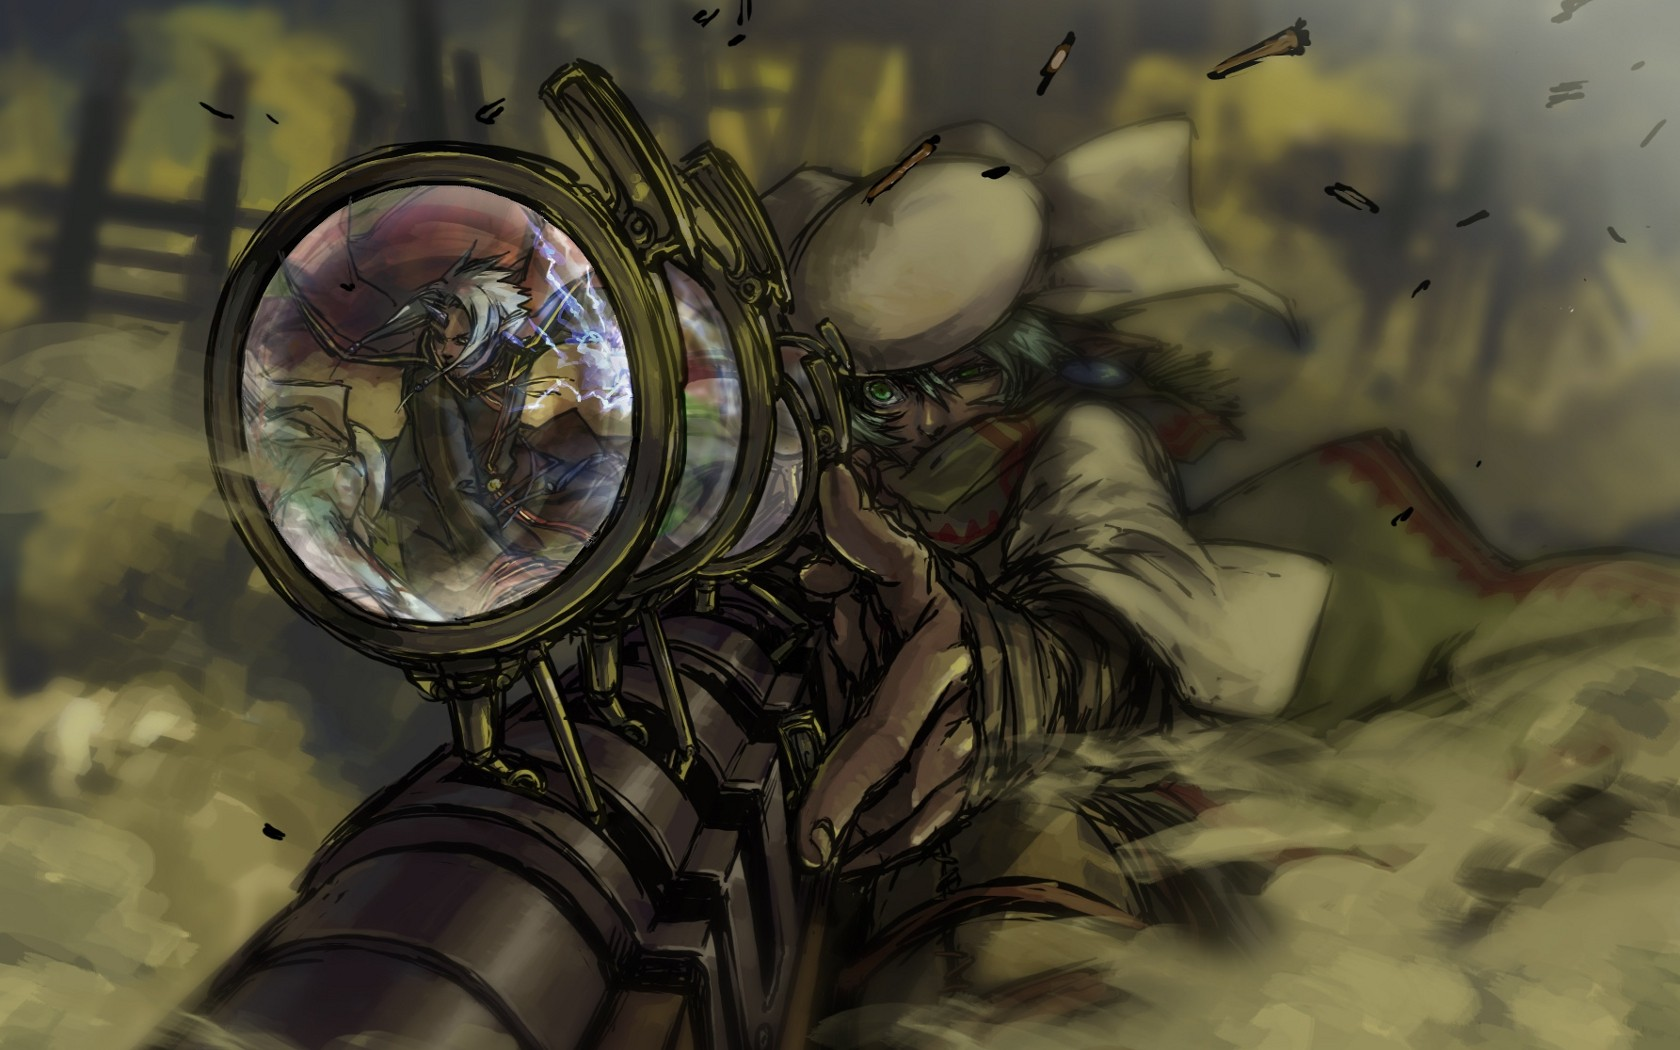 Anime Steampunk Wallpaper 1680x1050 Anime Steampunk 1680x1050